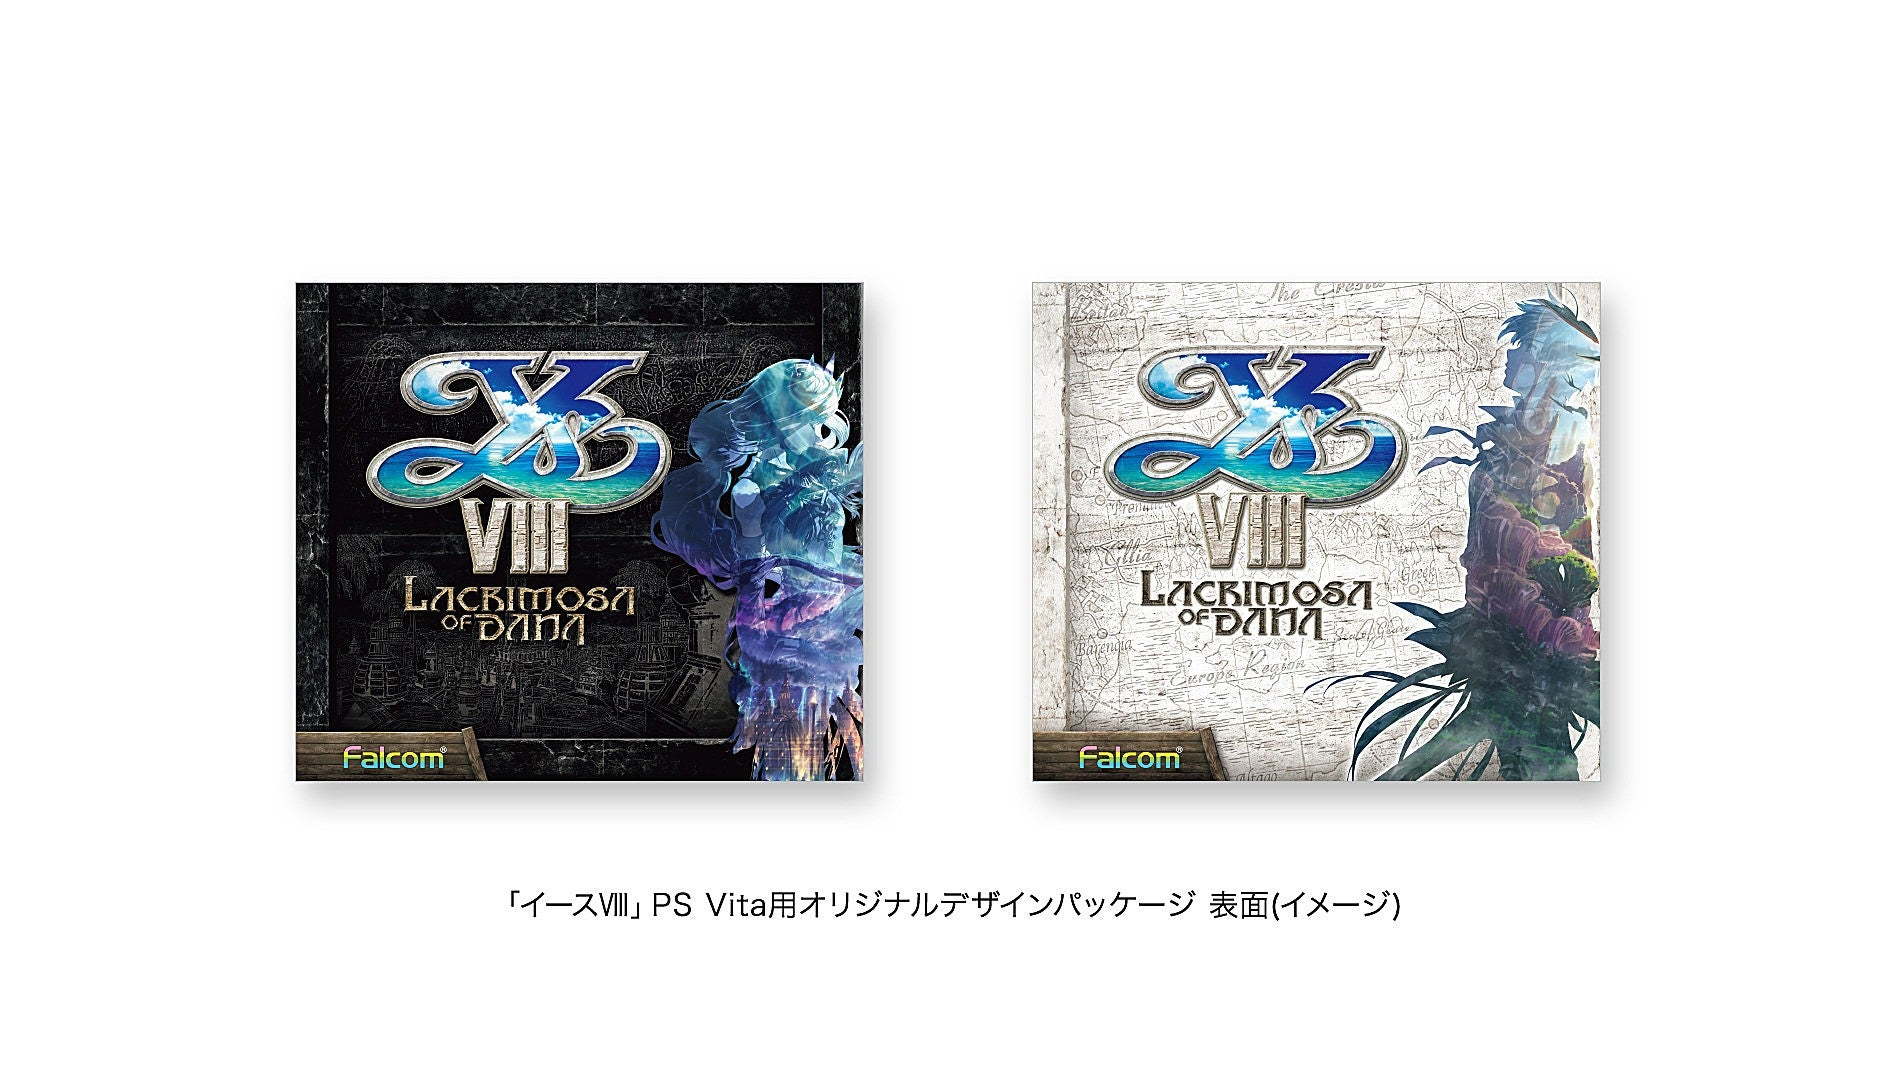 Image 2 for PlayStation Vita Wi-fi Model Ys VIII Black Pearl Edition